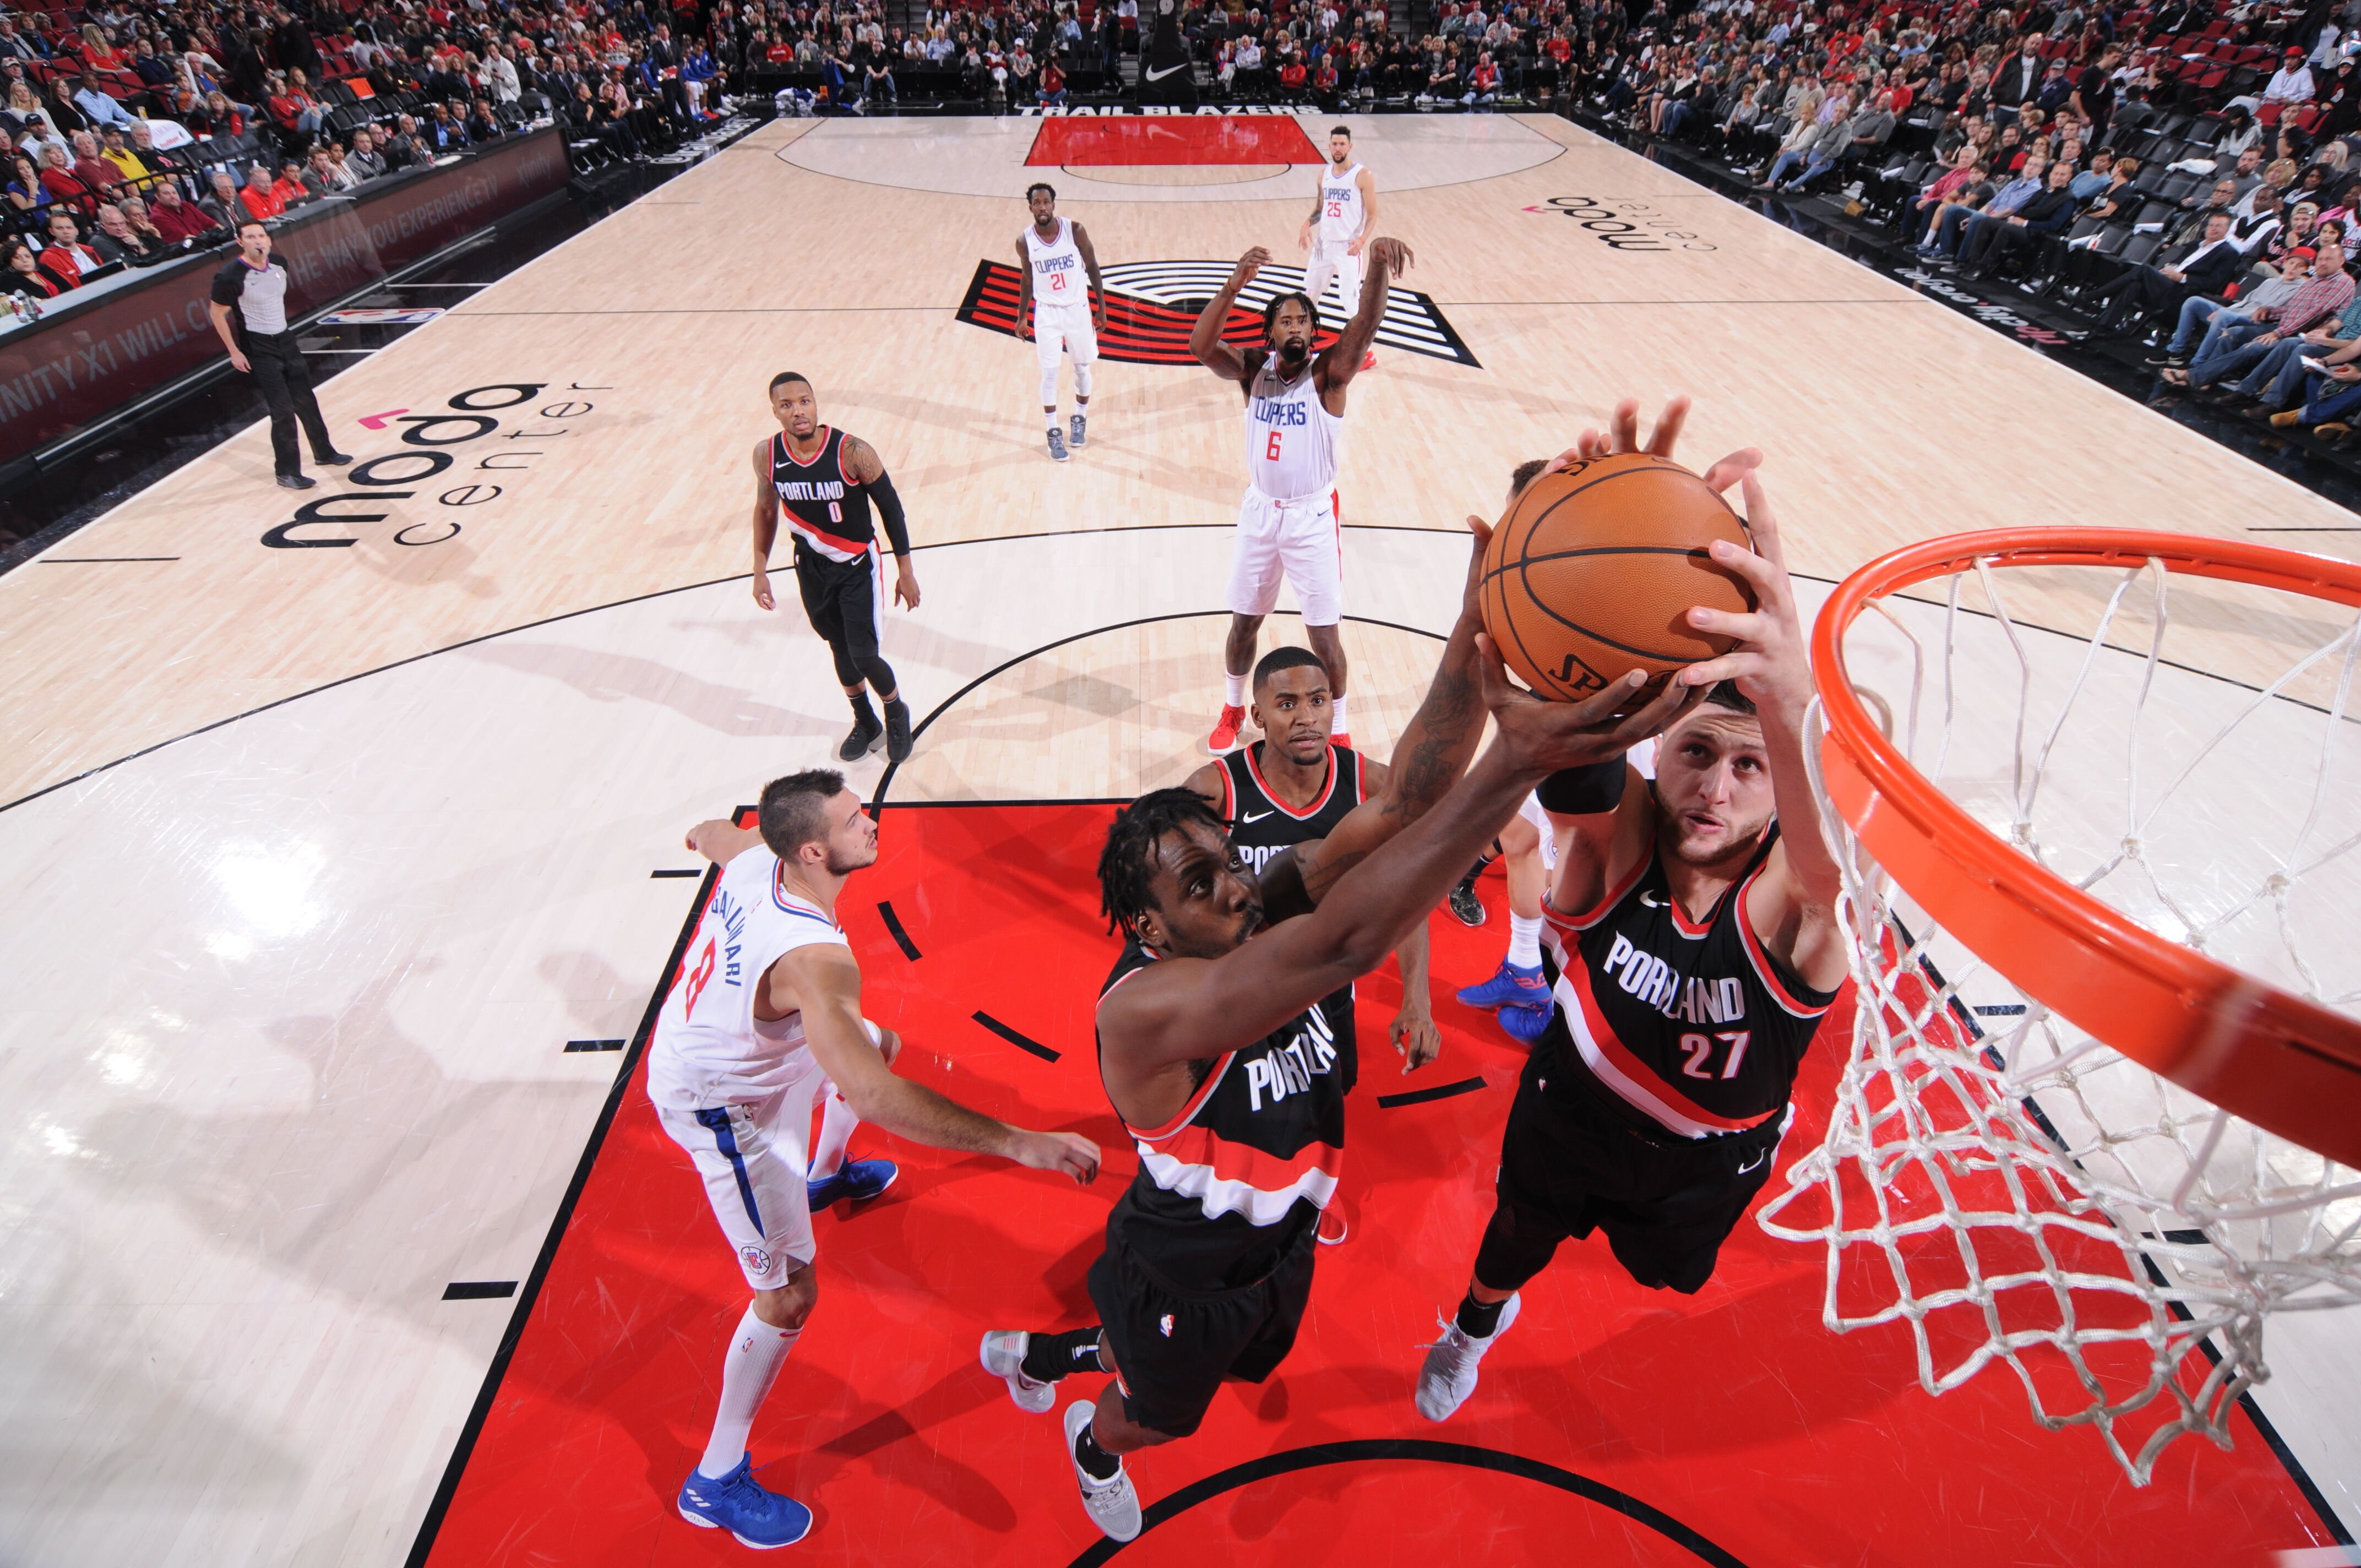 866888168-los-angeles-clippers-v-portland-trail-blazers.jpg